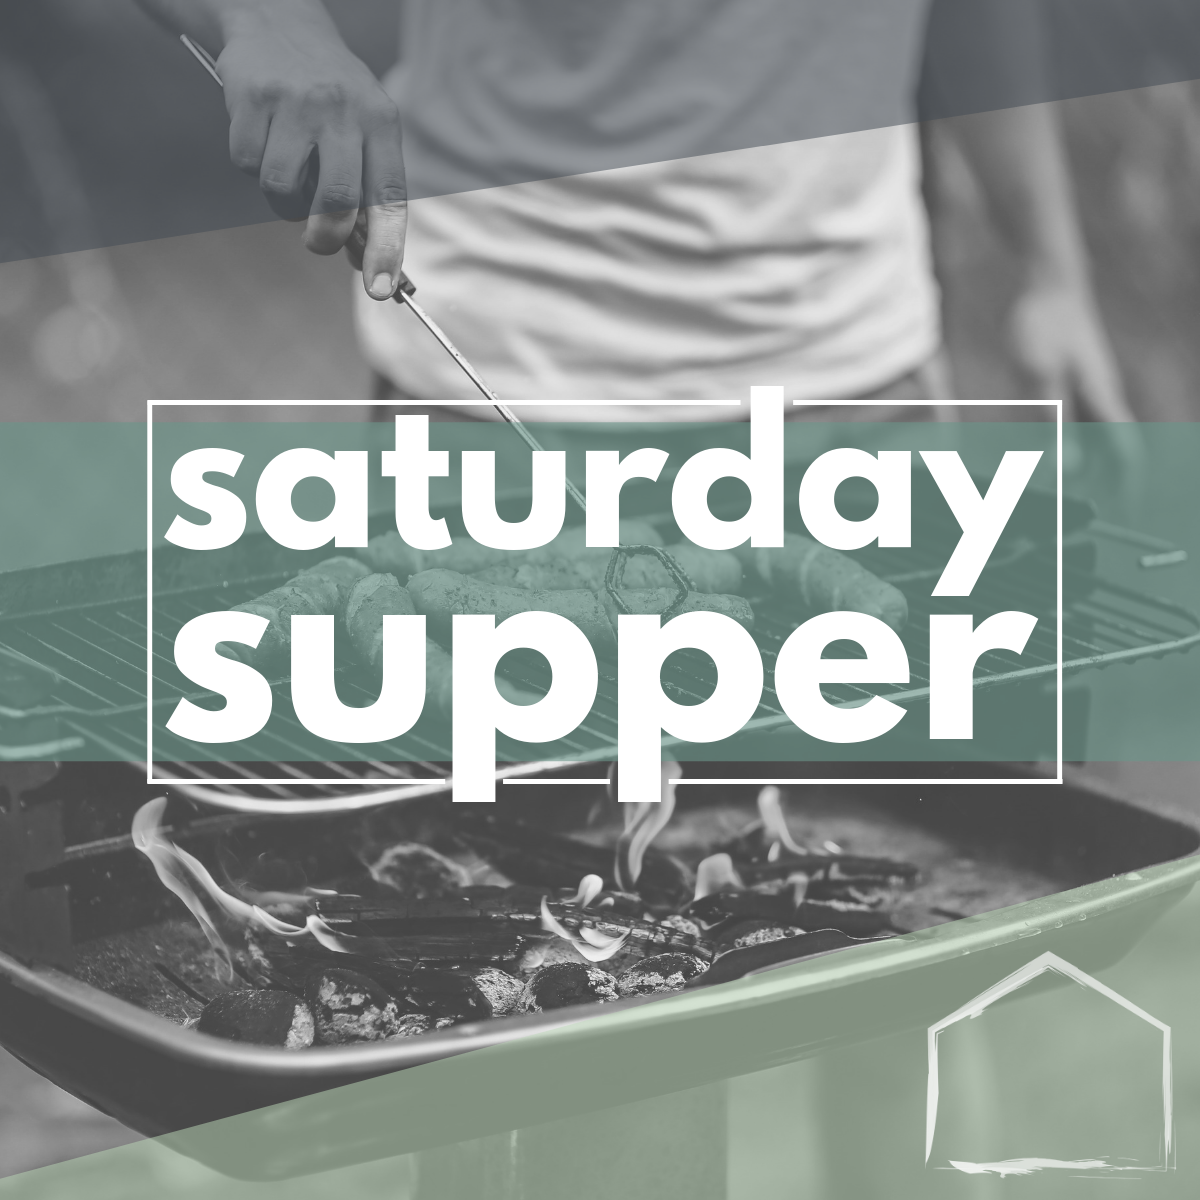 Saturday Supper Image.png